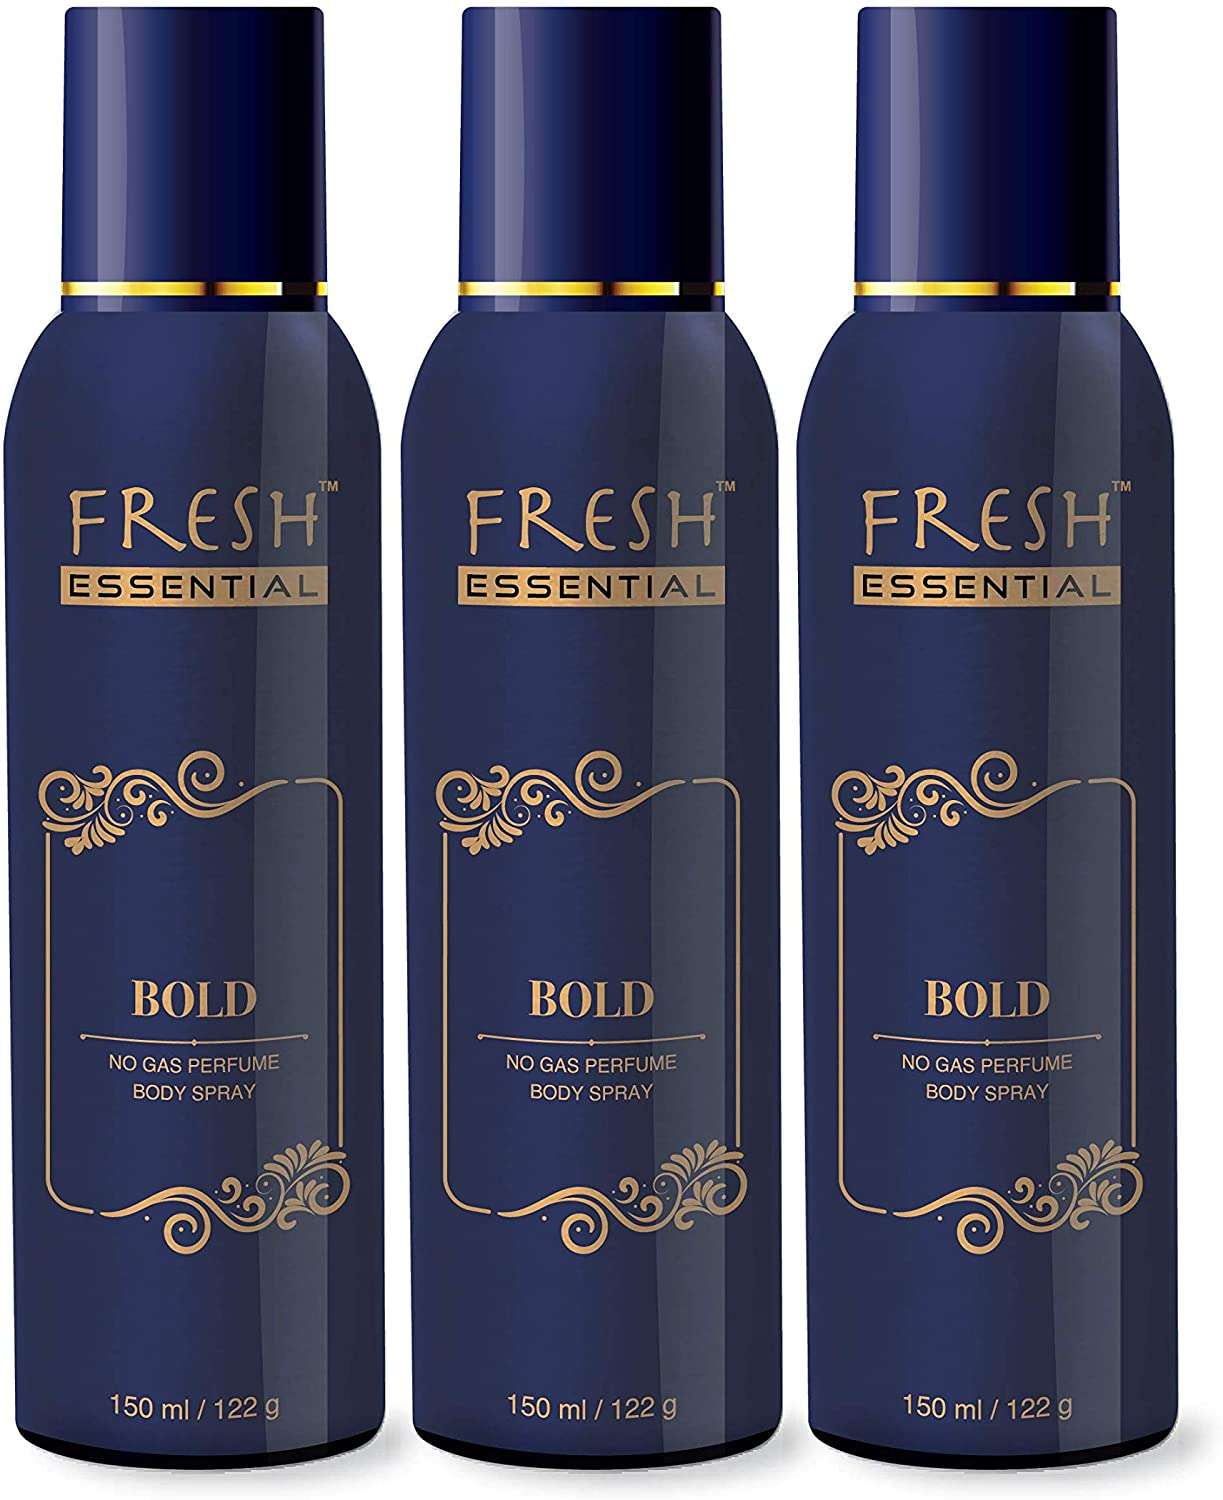 Fresh Essential No Gas Deodorant, 150 ml (Desire, Ignite, Bold - Pack of 3)